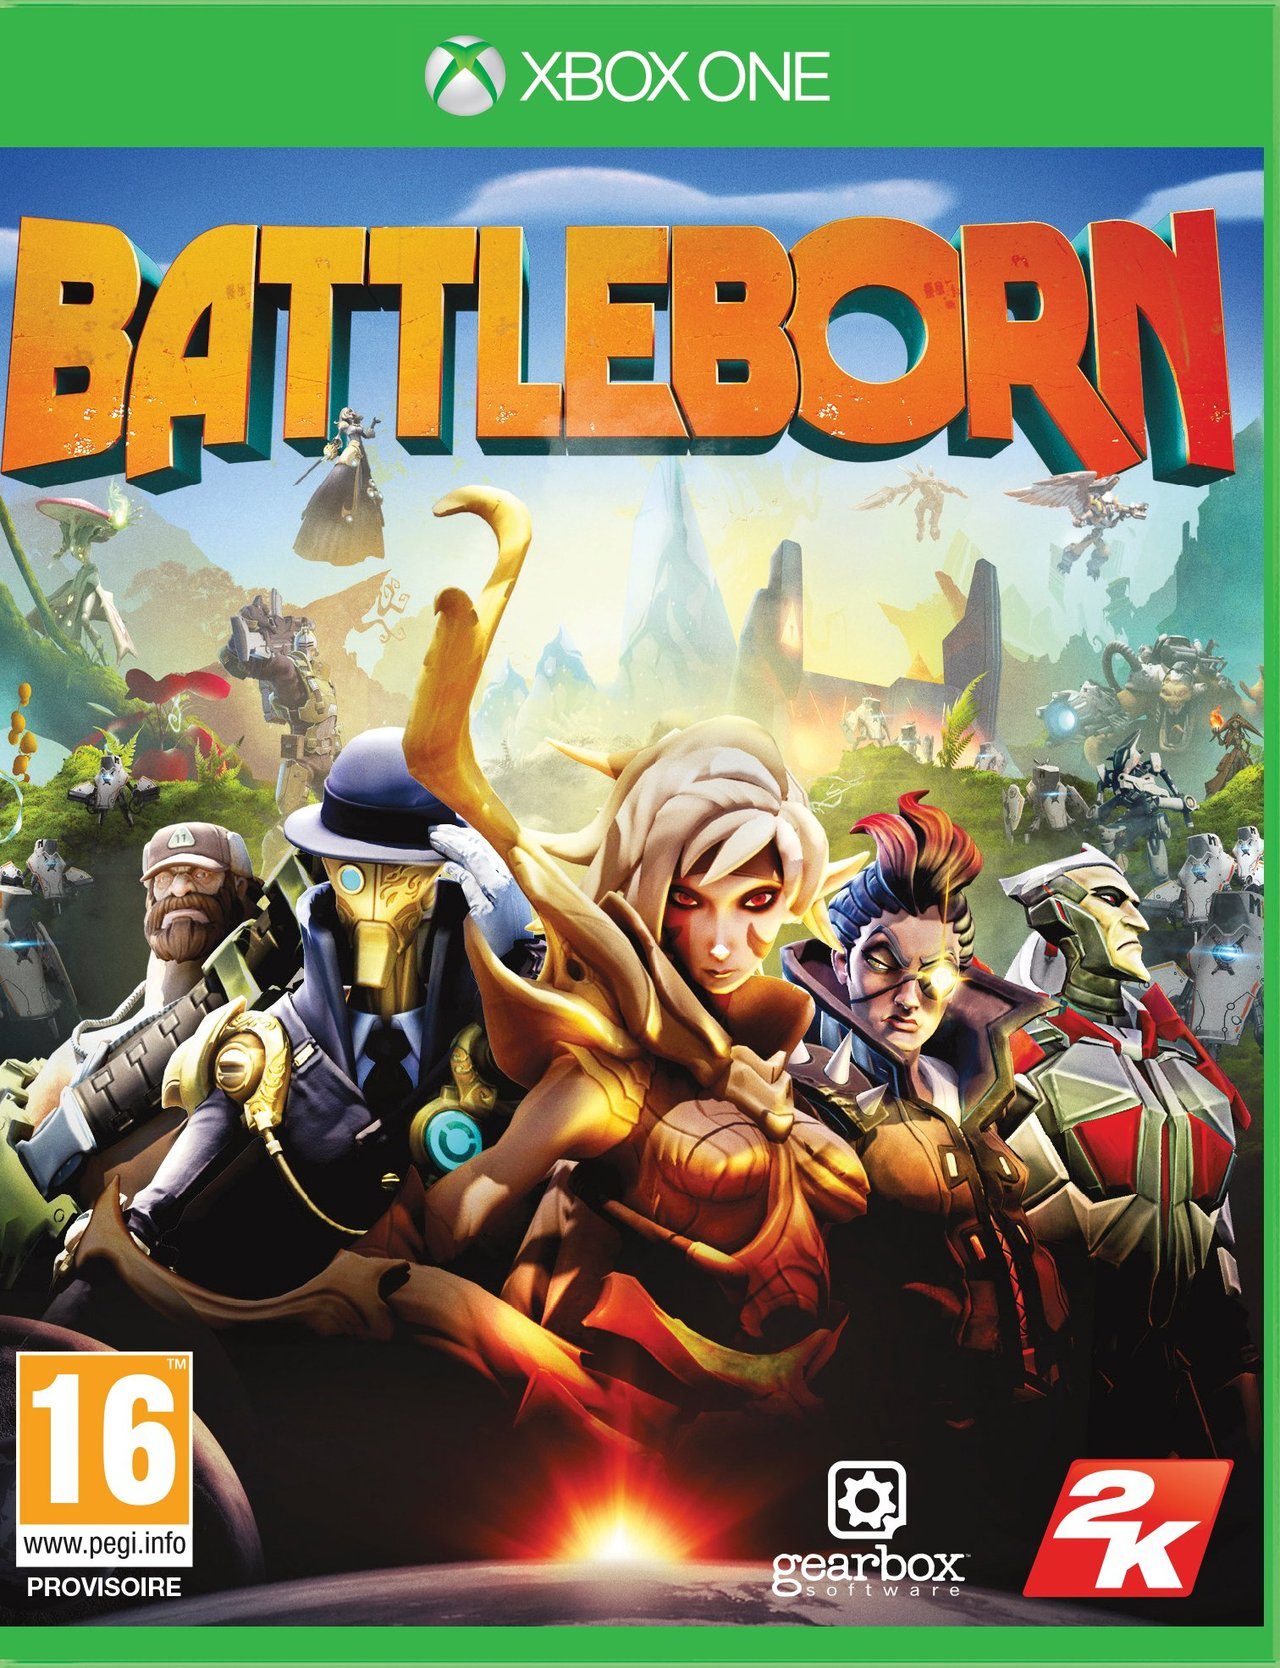 Book Cover Pictures Xbox One : Battleborn sur xbox one jeuxvideo